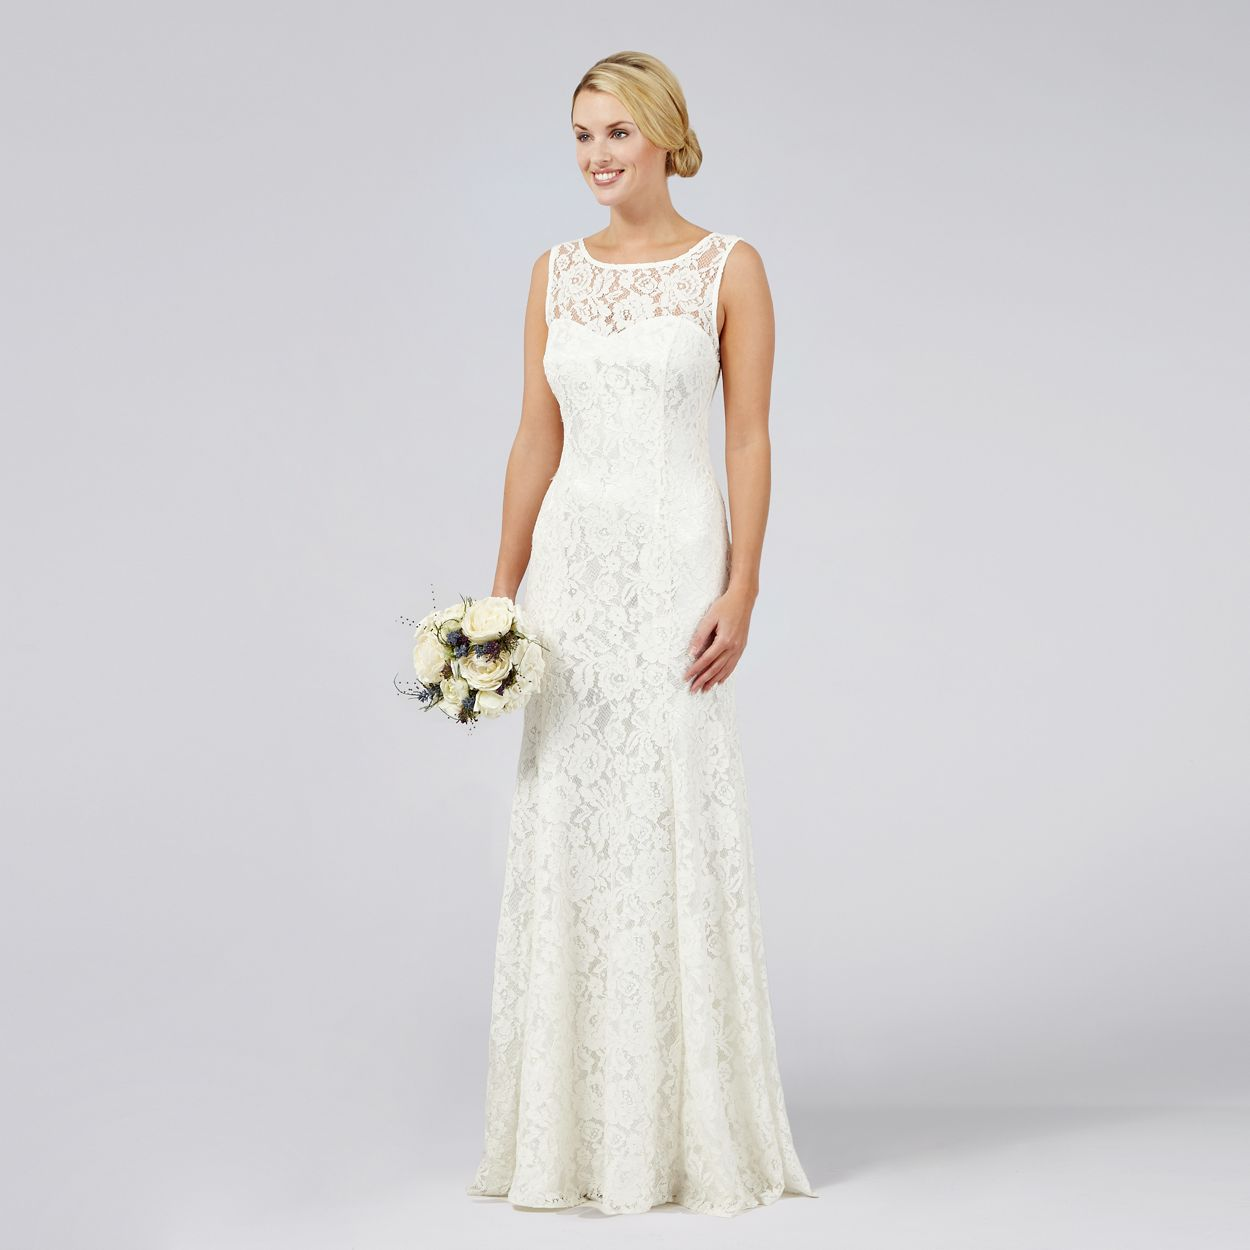 Wedding dresses - Women  Debenhams